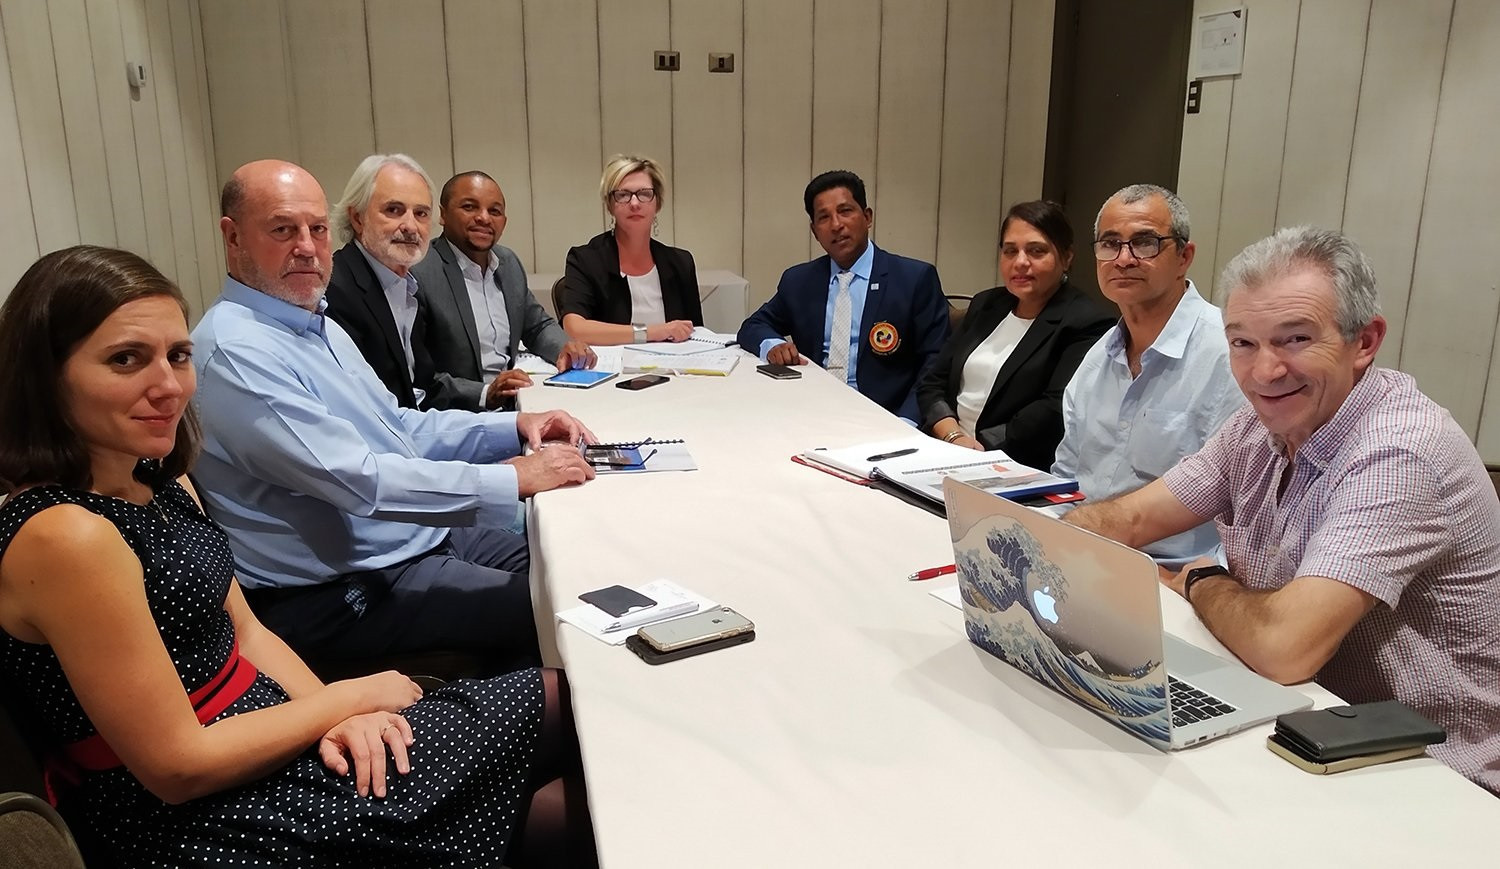 The meeting took place in Chile's capital Santiago during this year's Championships ©WKF